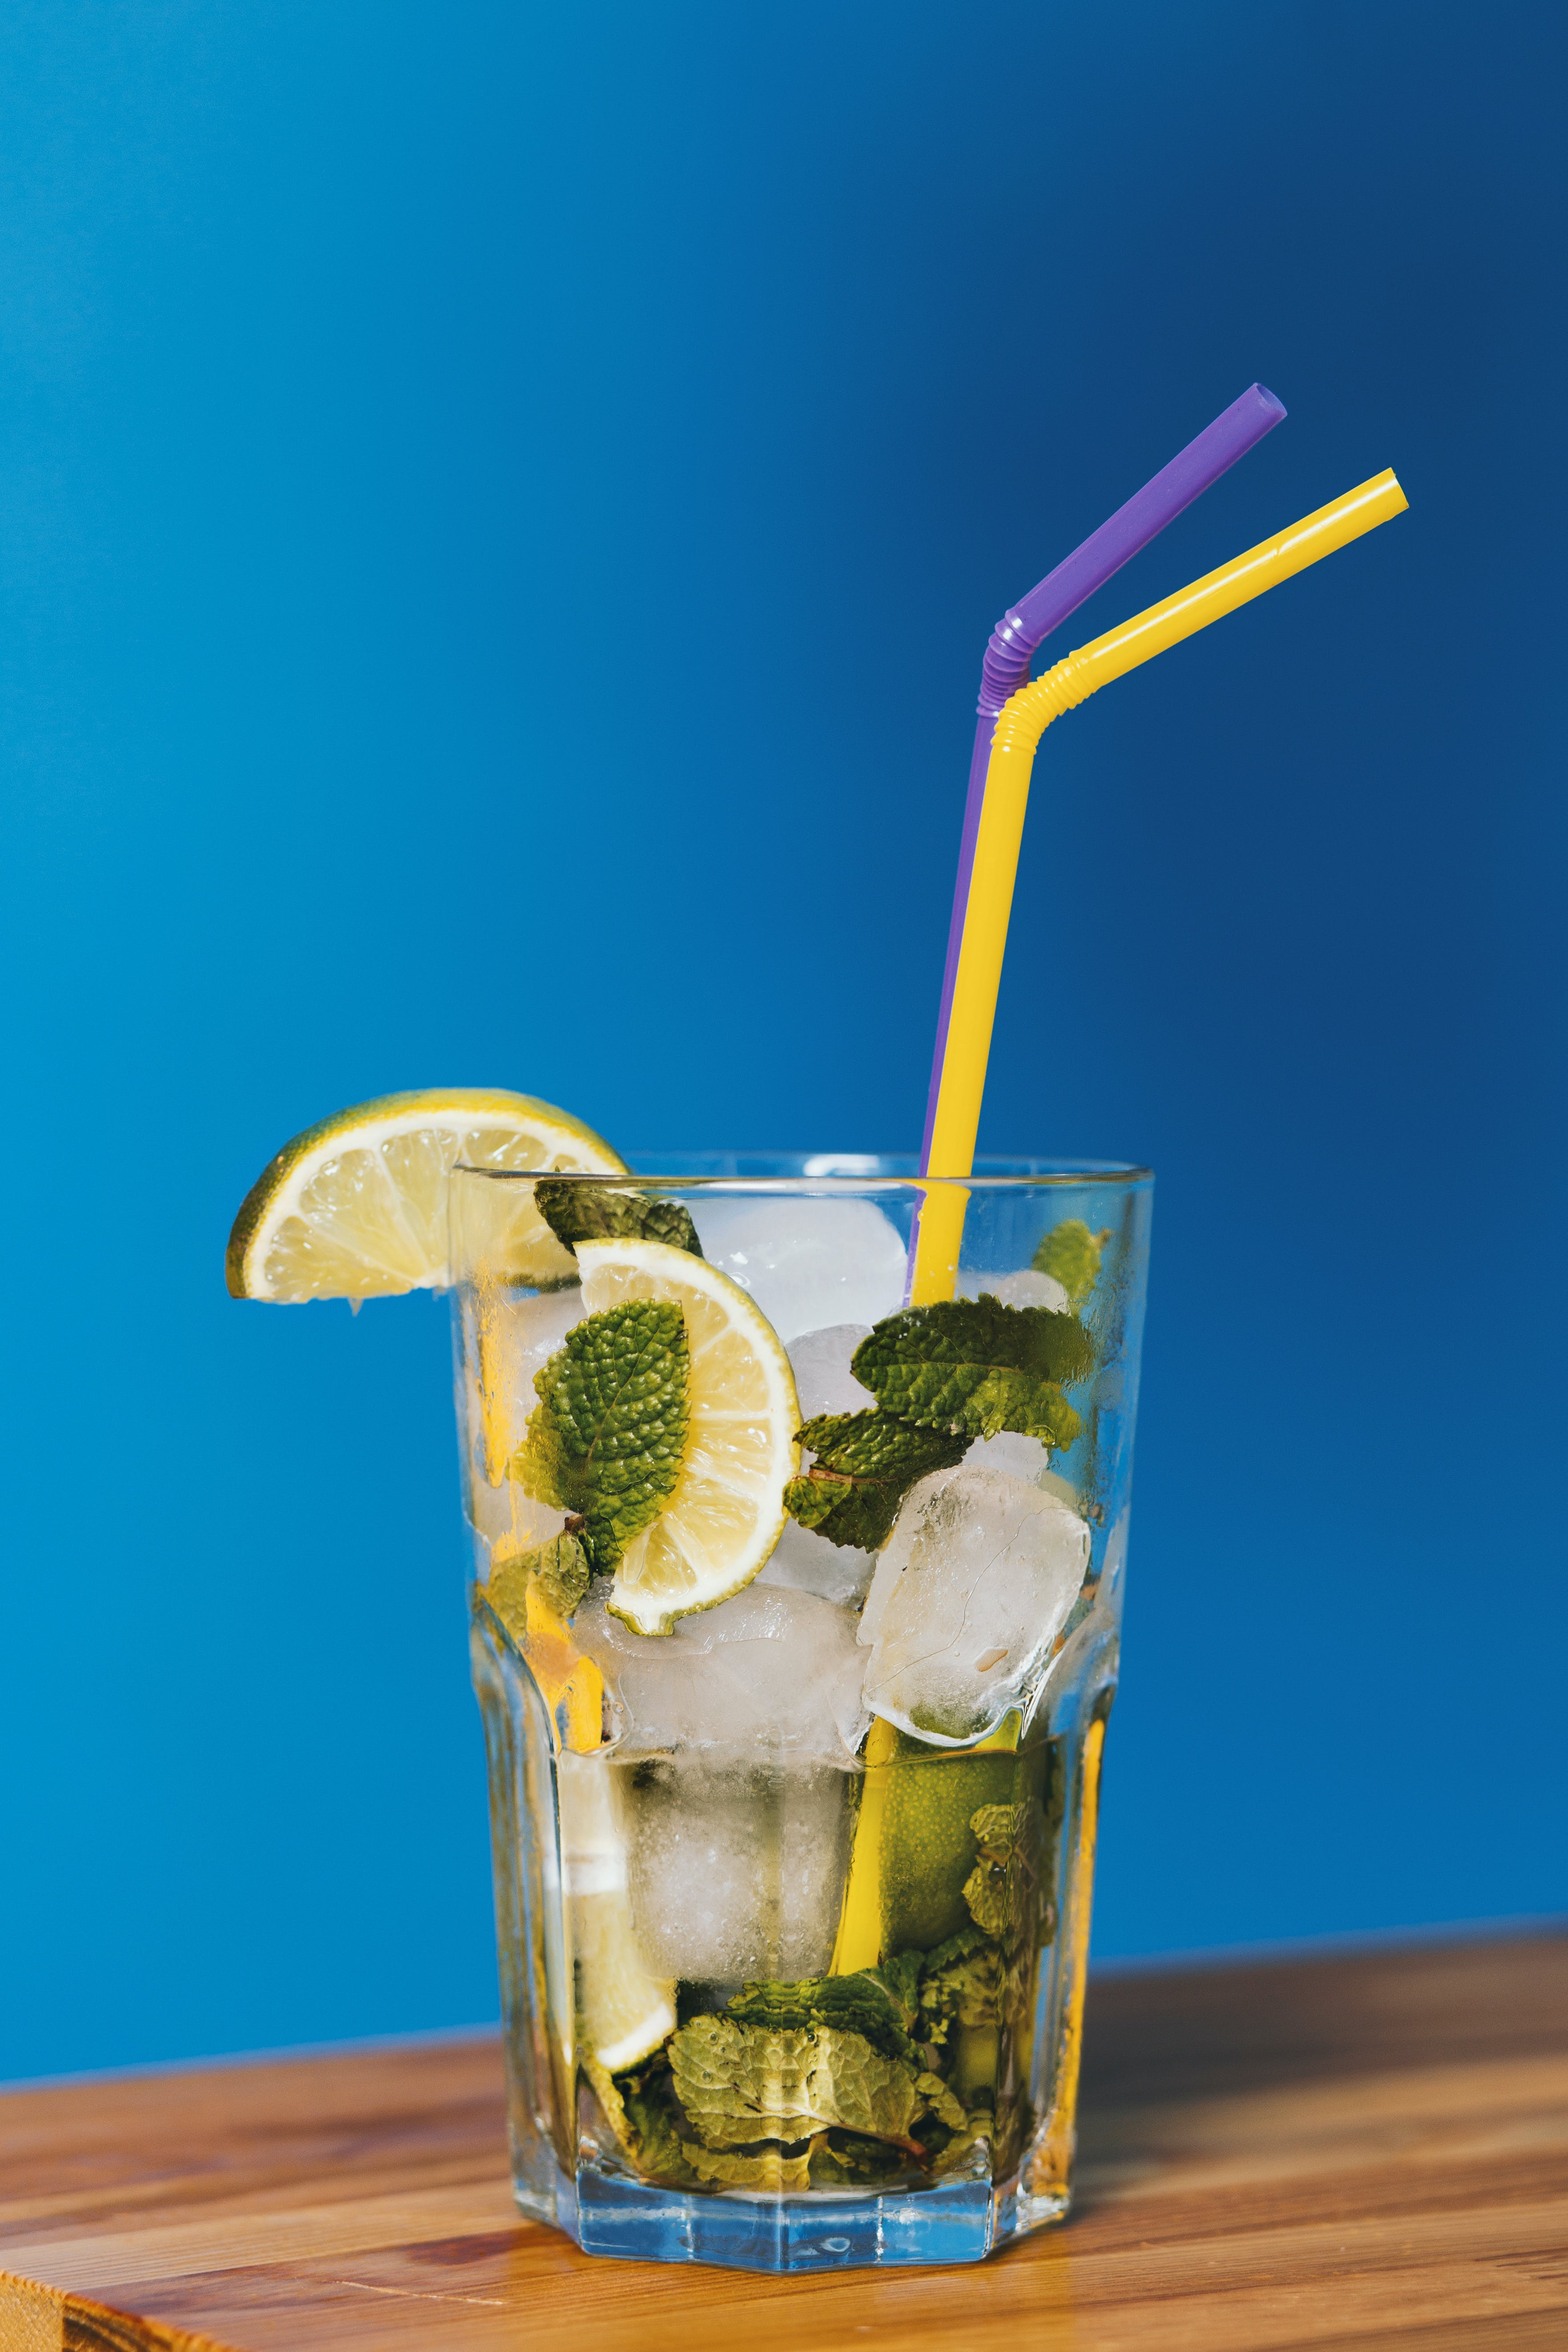 Lime Cocktail Drink With Two Straws